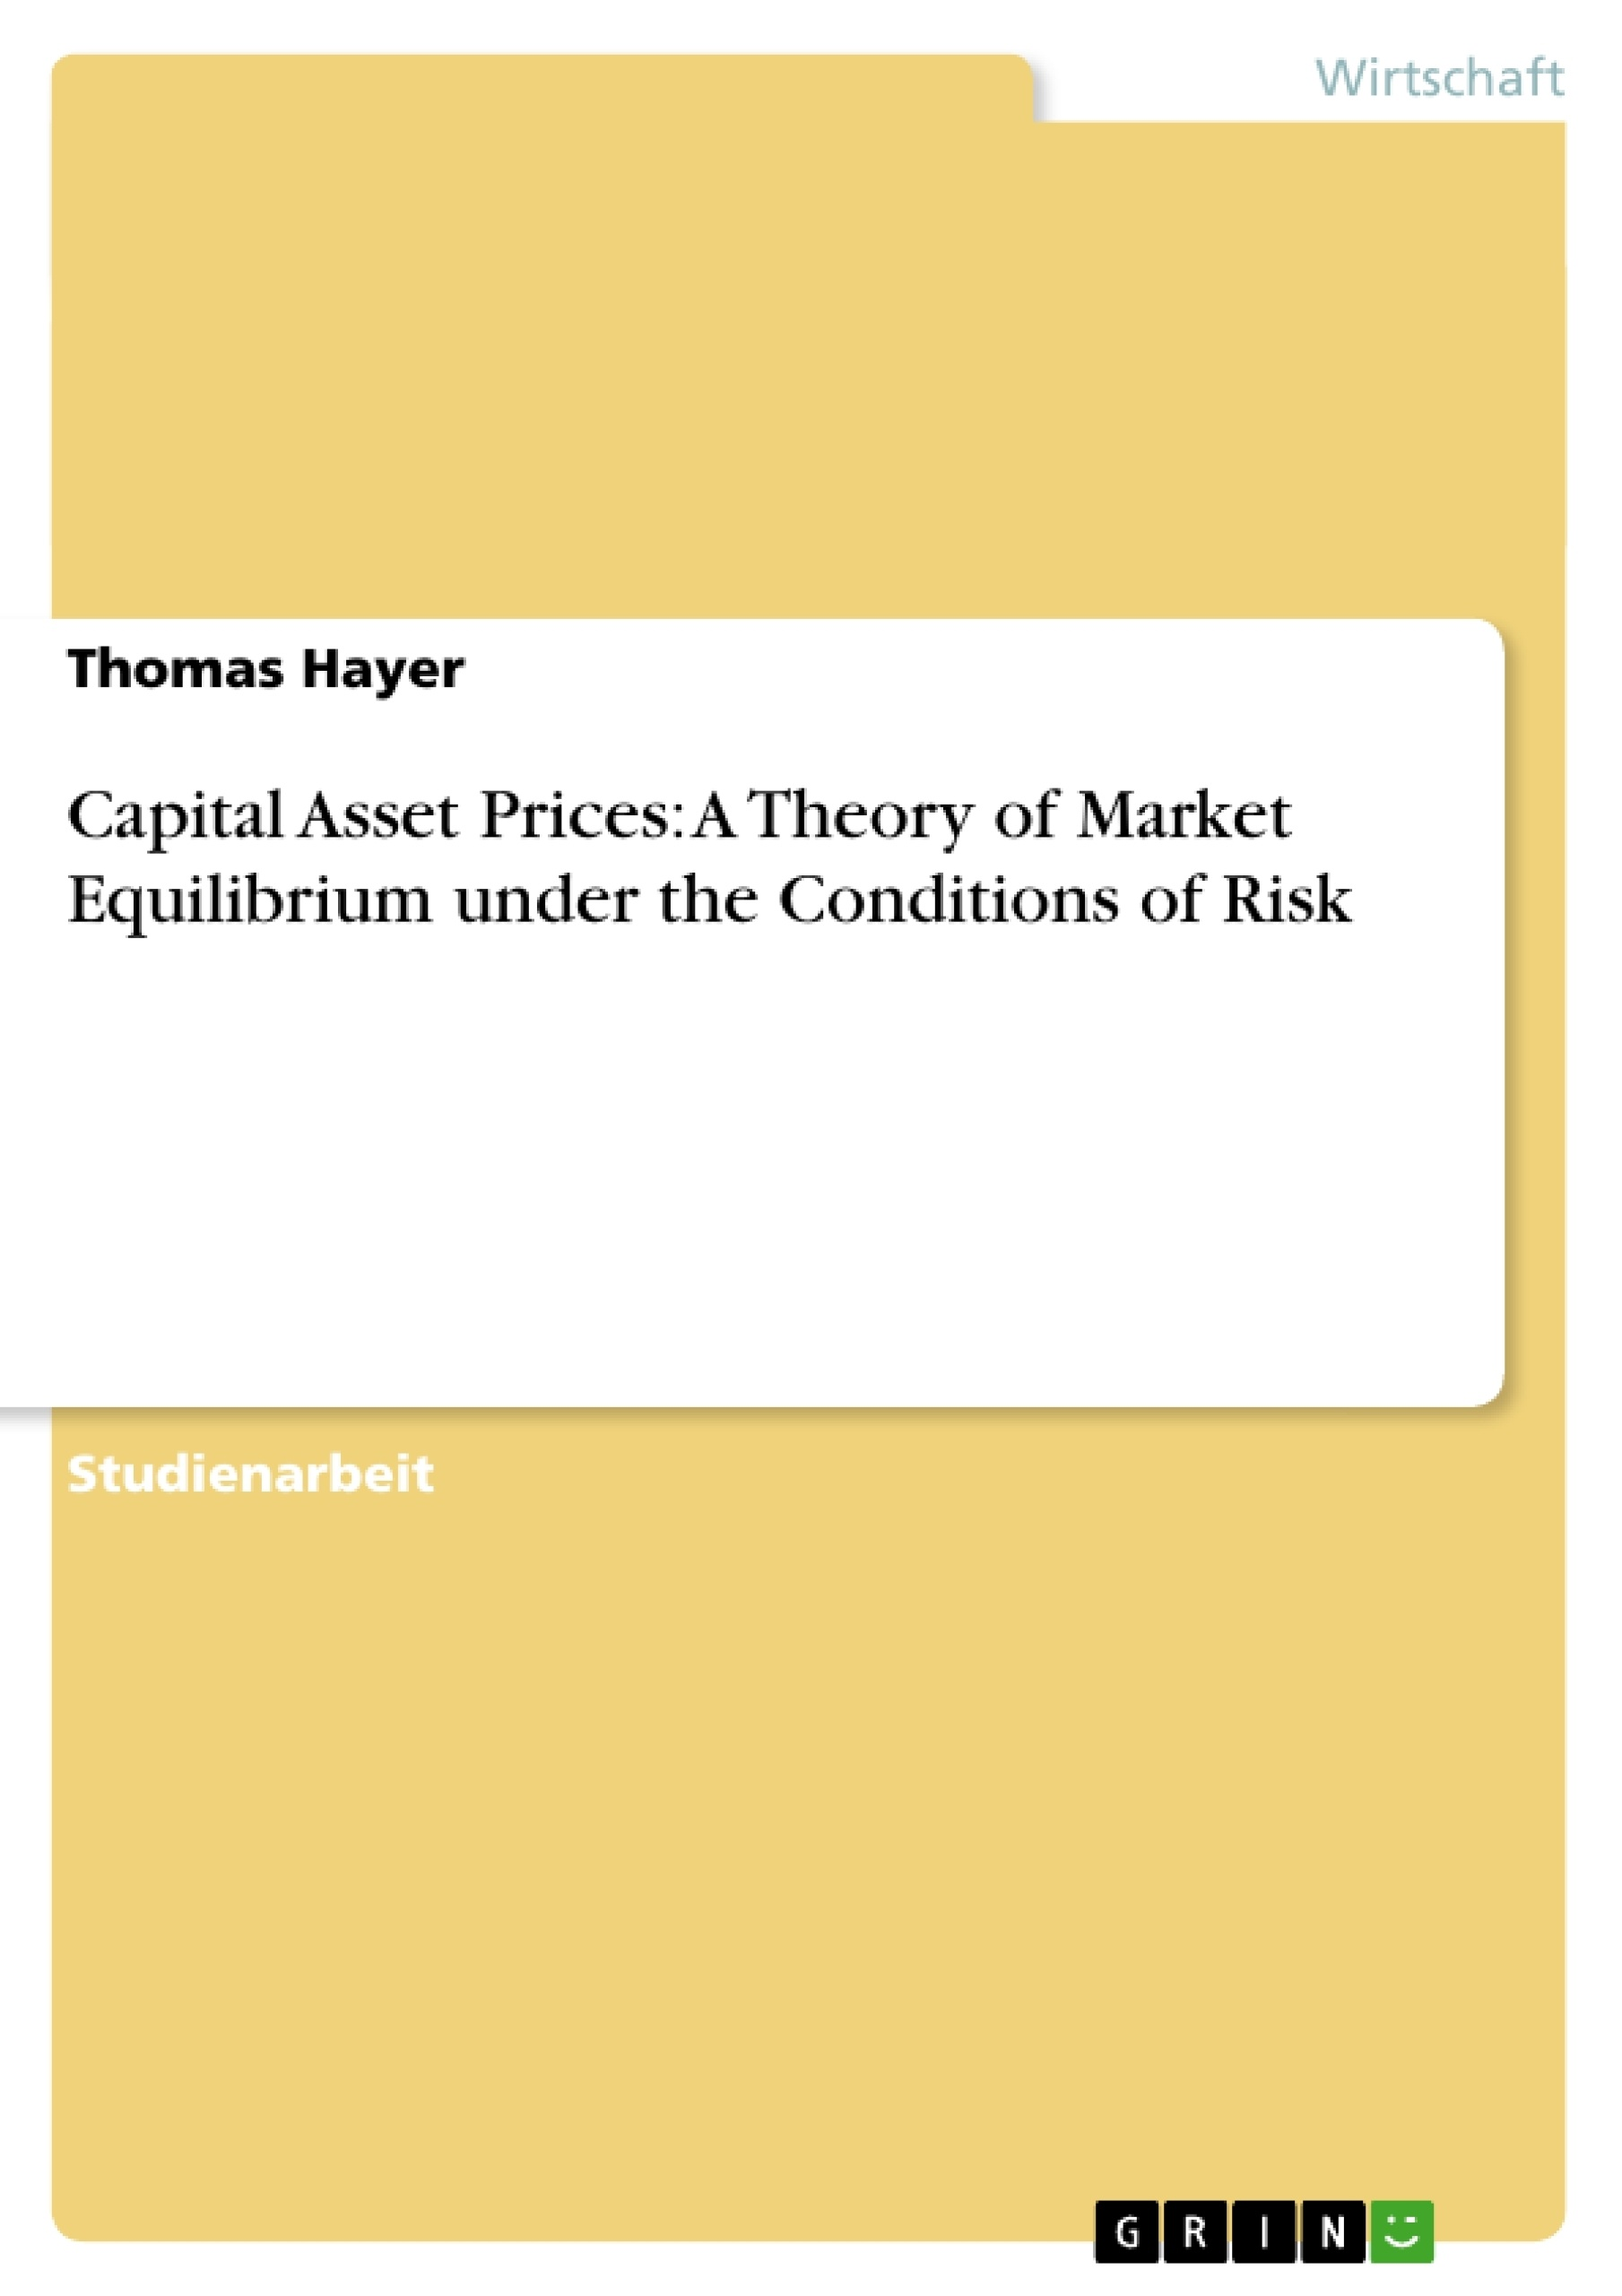 Titel: Capital Asset Prices: A Theory of Market Equilibrium under the Conditions of Risk